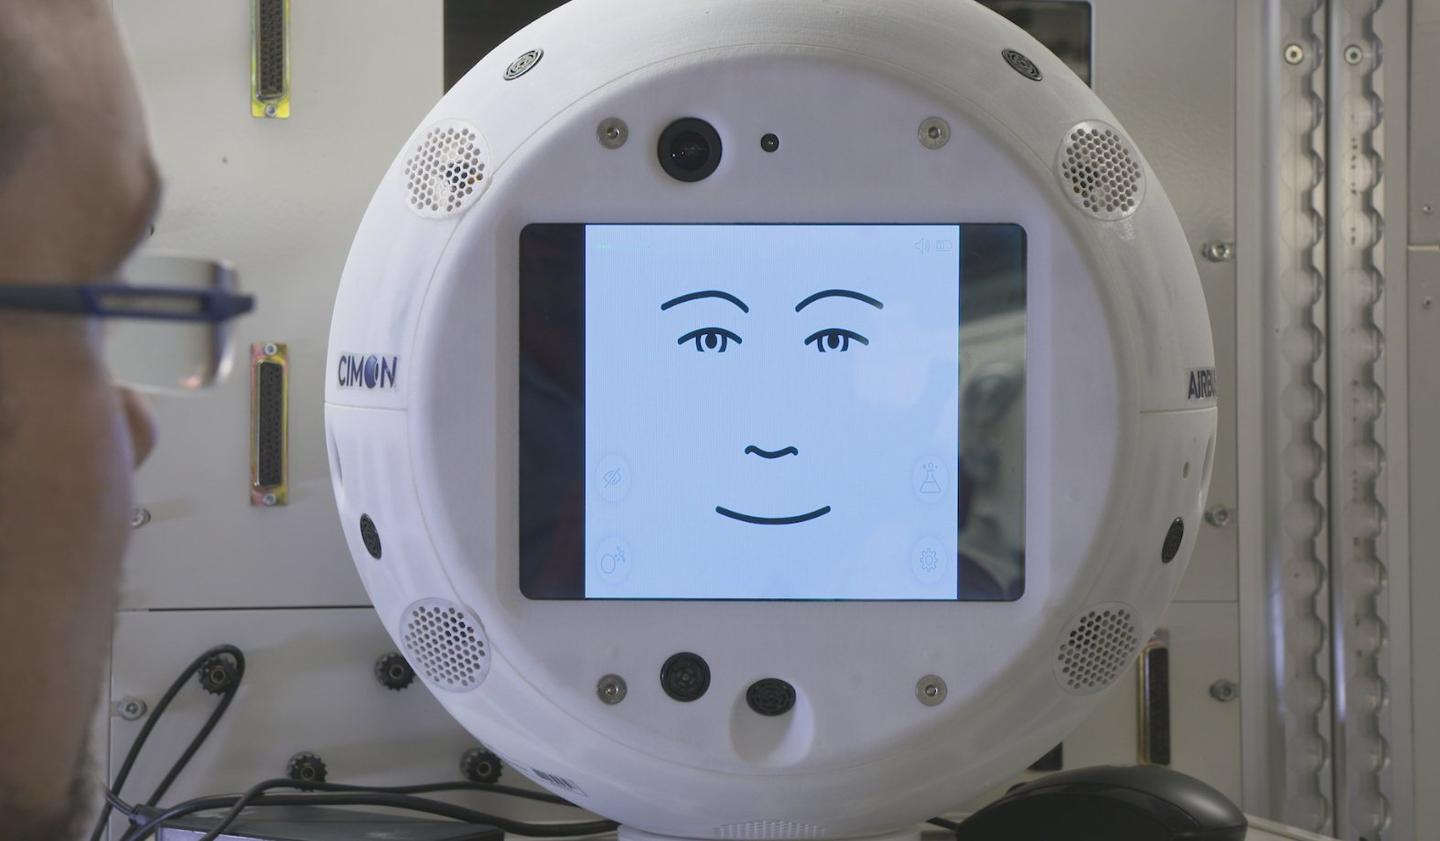 CIMON has an 8-inch screen to the front, which was chosen because it was about the right size to display an animated face